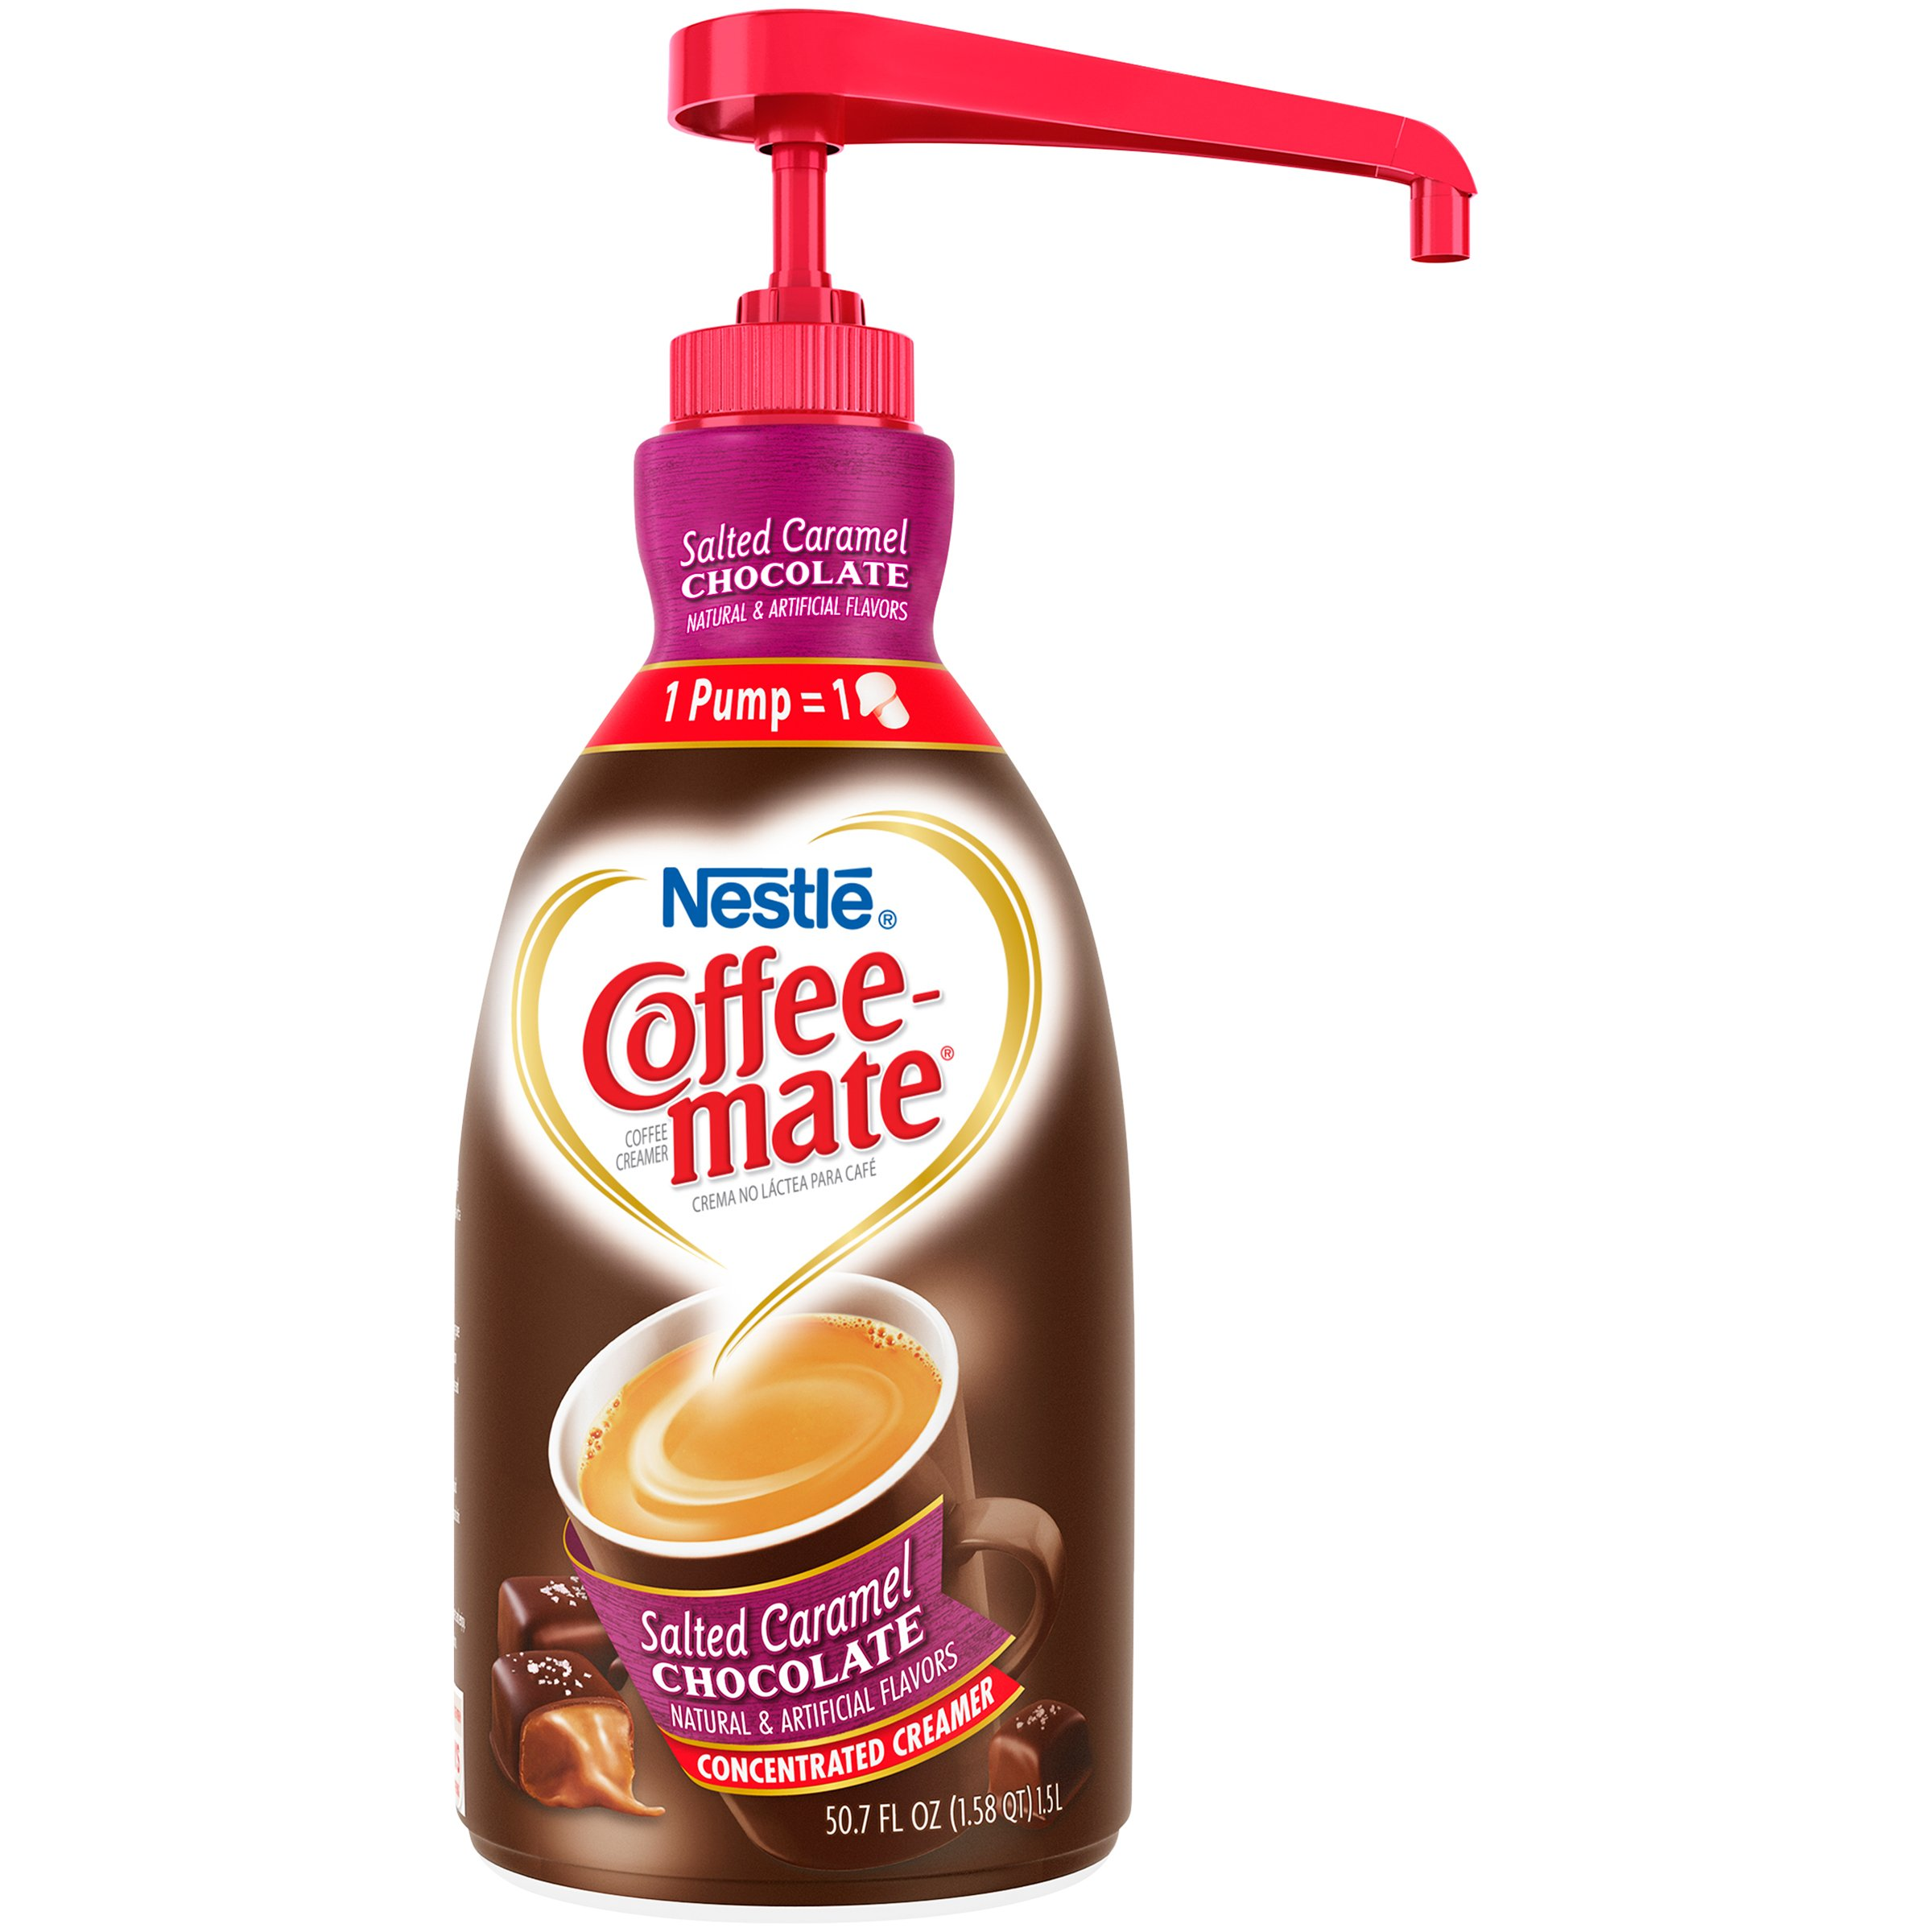 Nestle Coffee-mate Coffee Creamer, Salted Caramel Chocolate, liquid pump bottle, 50.7 Fl. Oz (Pack of 1) by Nestle Coffee Mate